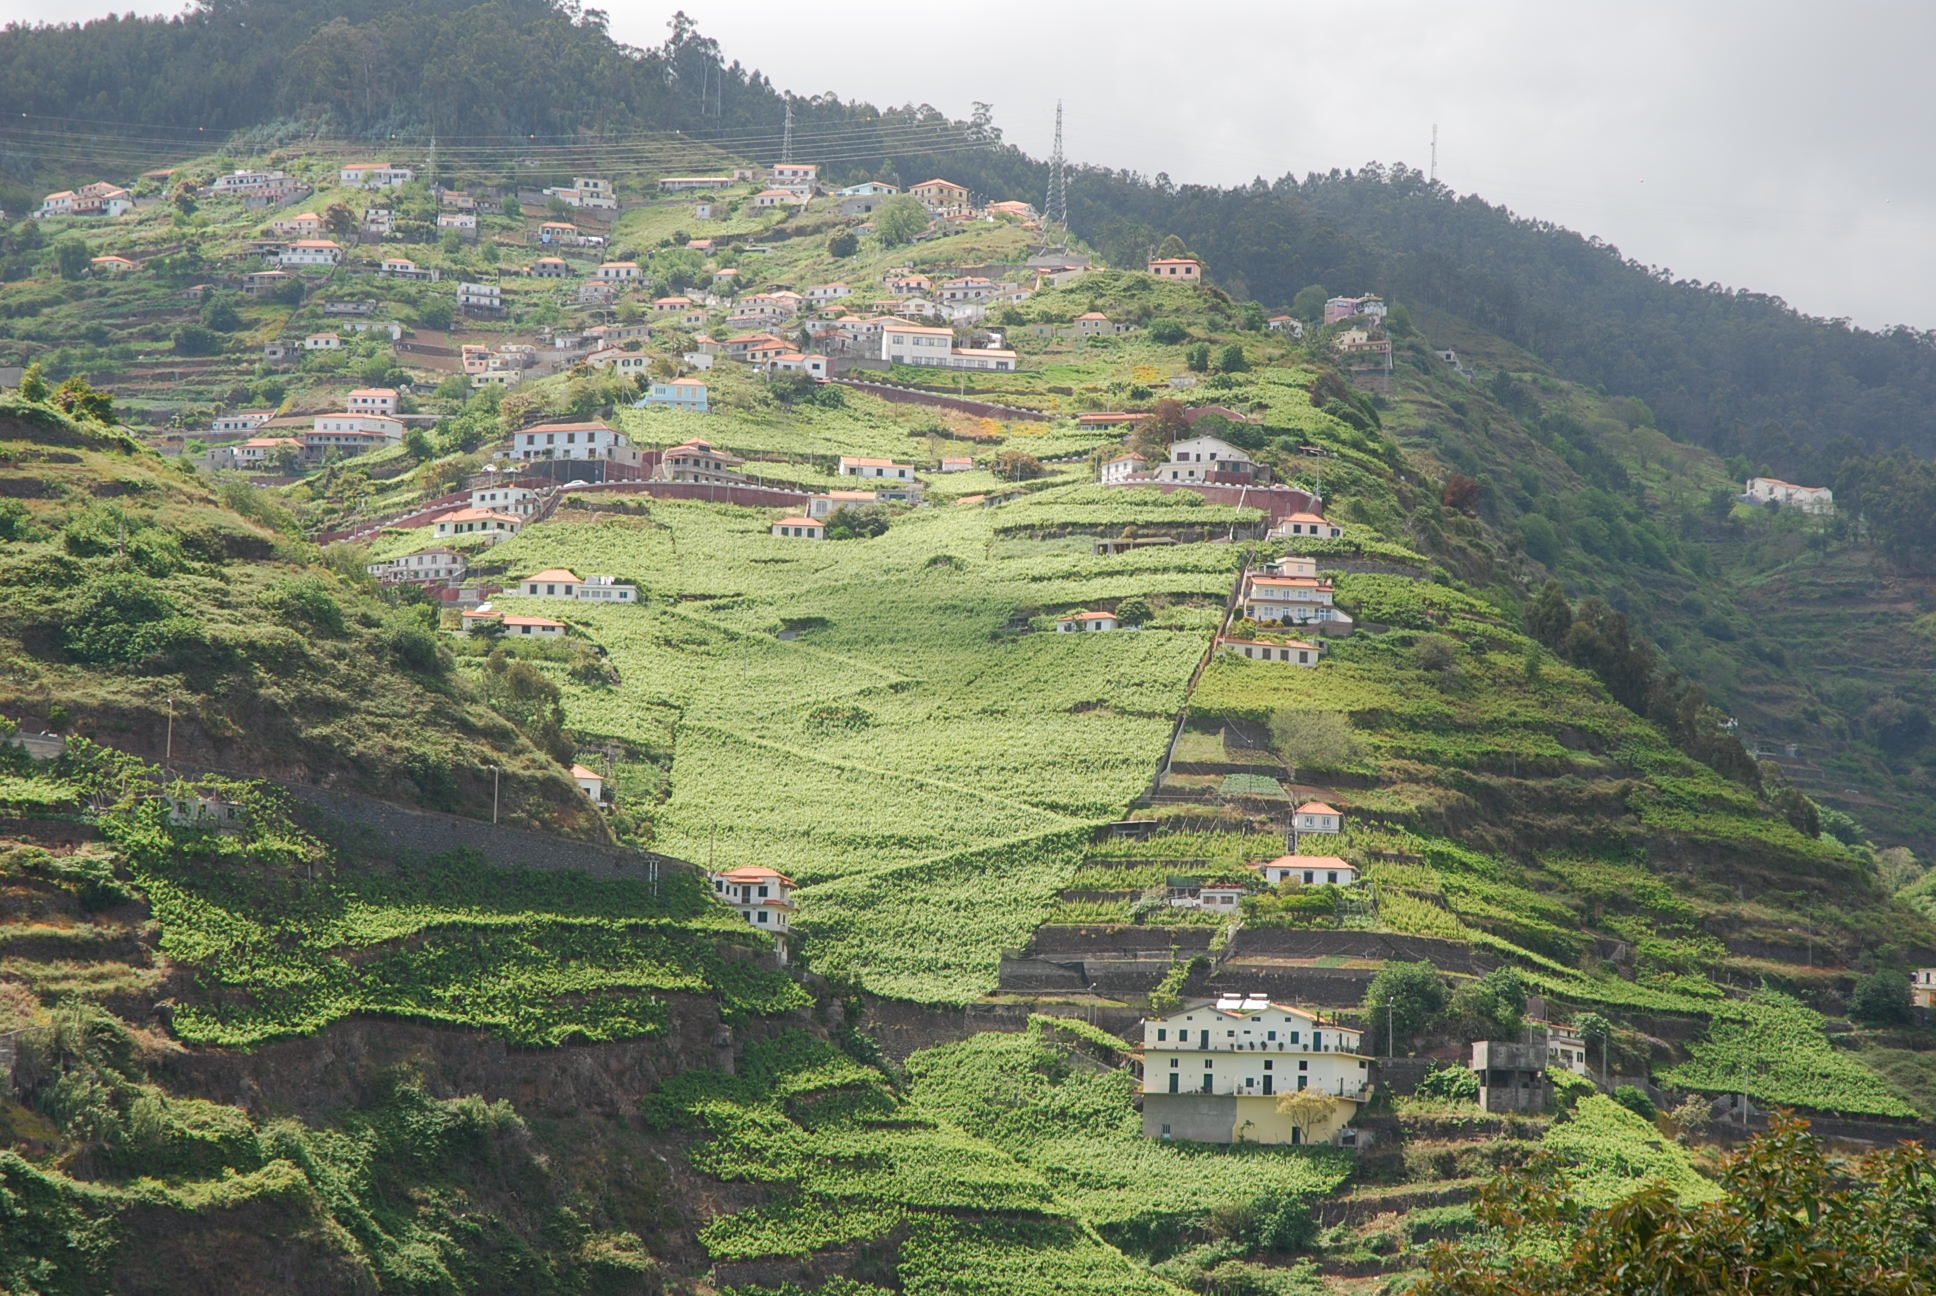 Latada vineyards of Madeira (Broadbent)